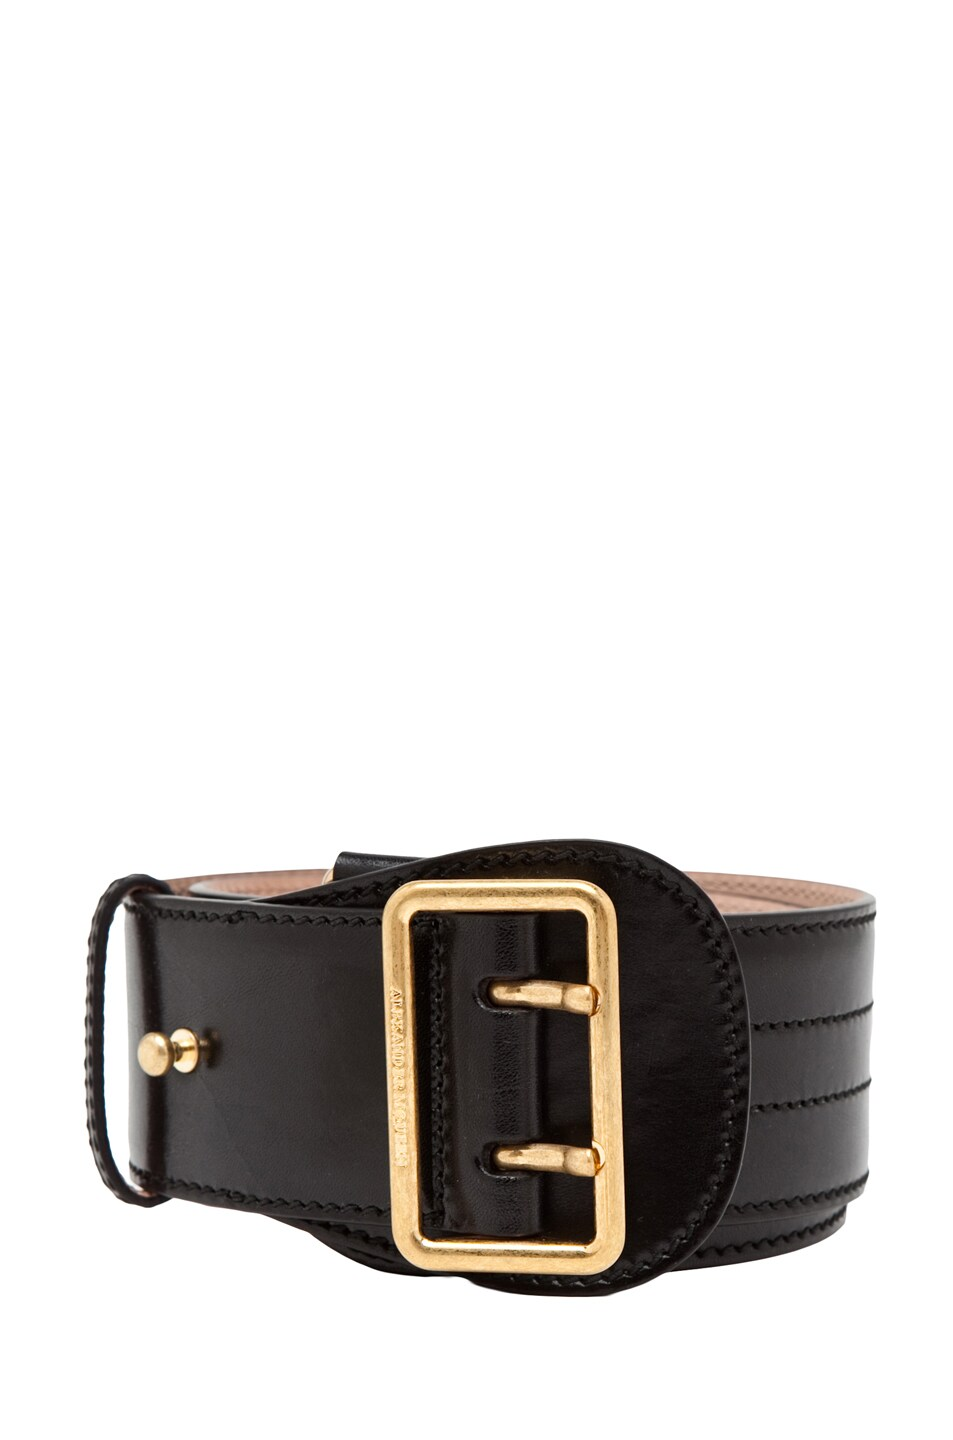 Image 1 of Alexander McQueen Waist Belt in Black